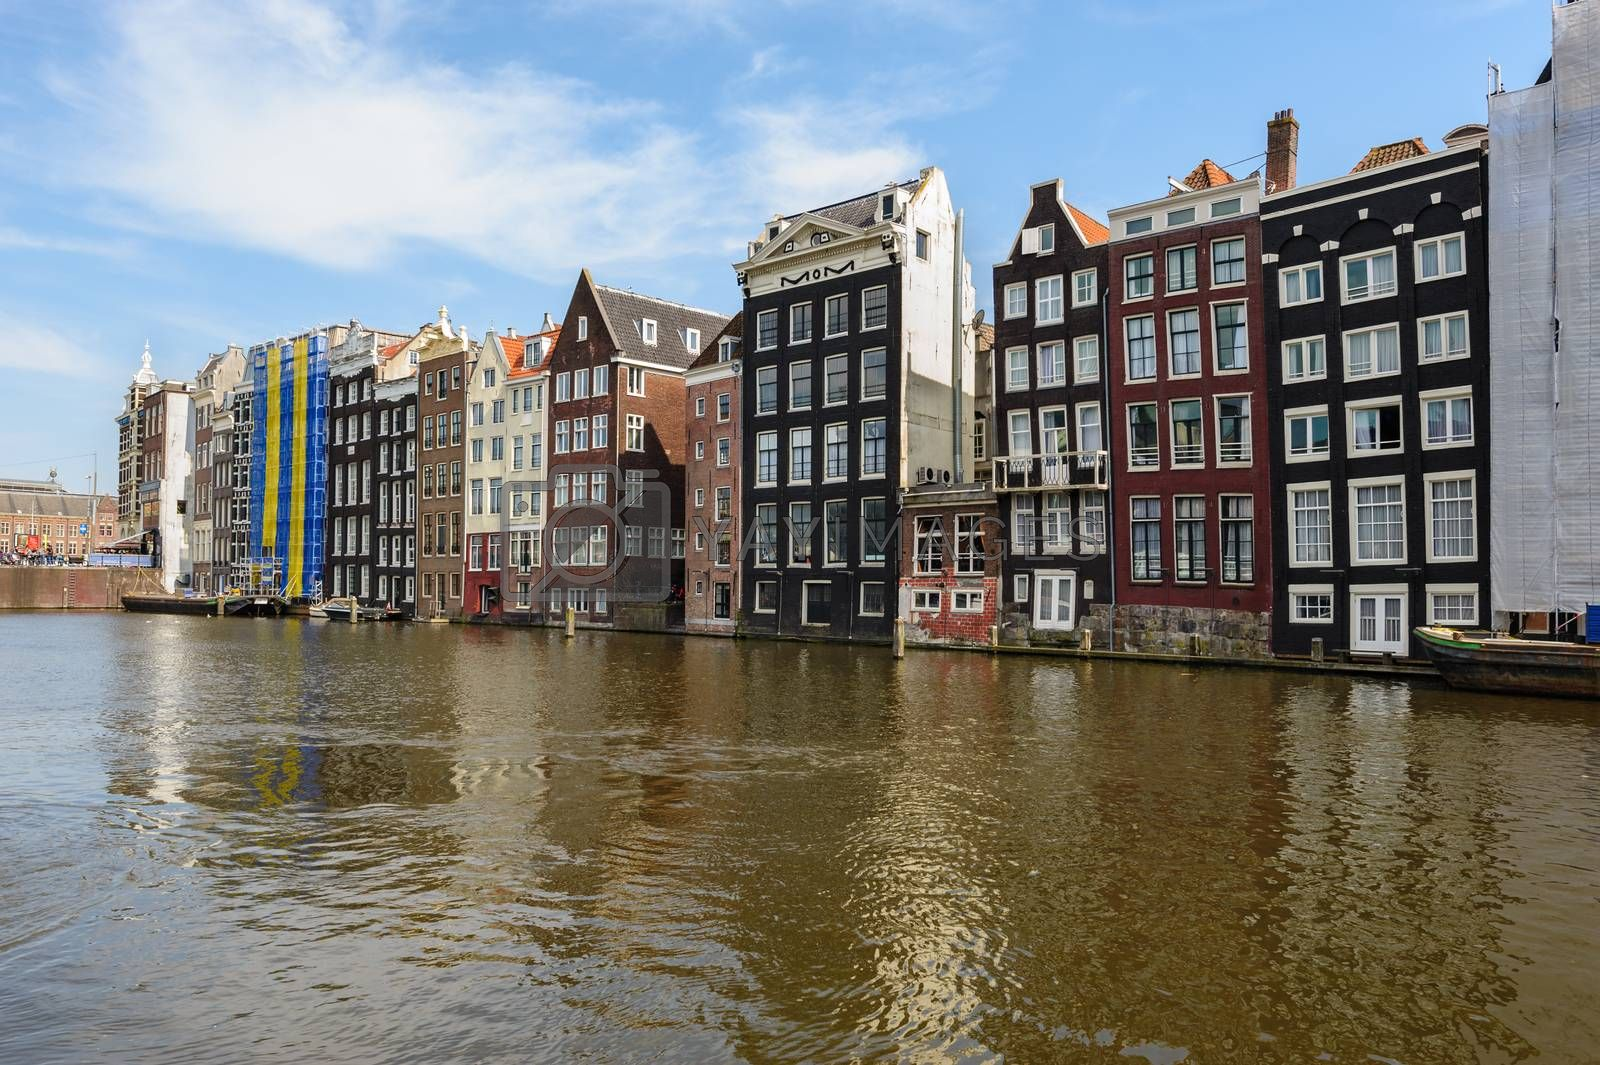 Spirngtime view of the Dancing Canal Houses of Damrak, iconic canal houses in the capital city of Amsterdam, Netherlands